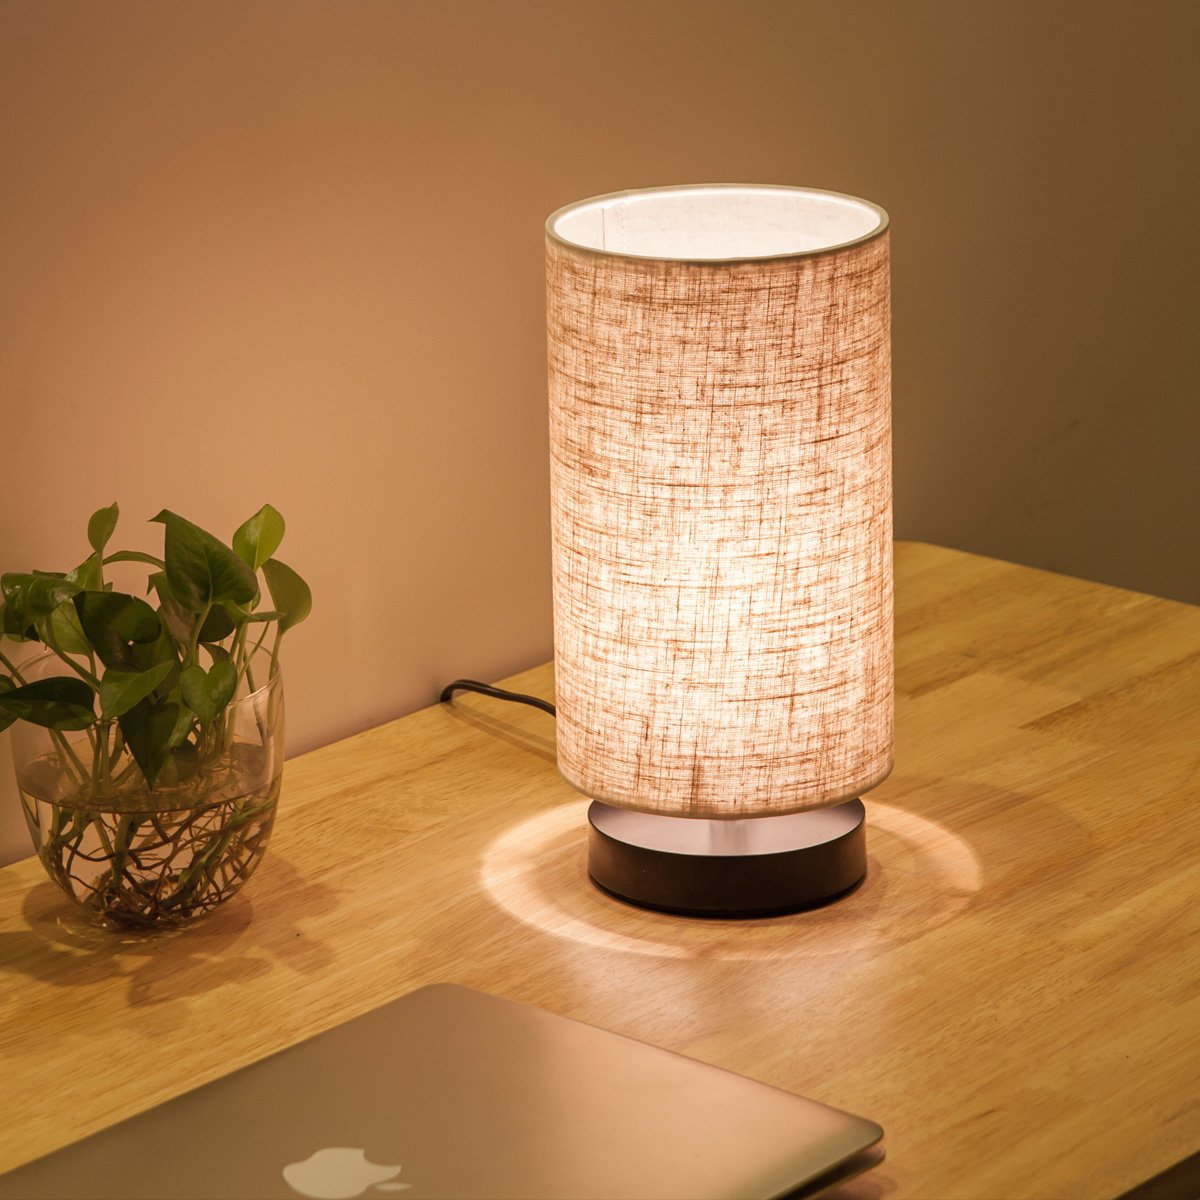 Lifeholder Table Lamp, Bedside Nightstand Lamp, Simple Desk Lamp, Fabric Wooden Table Lamp for Bedroom Living Room Office Study, Cylinder Black Base by lifeholder (Image #2)